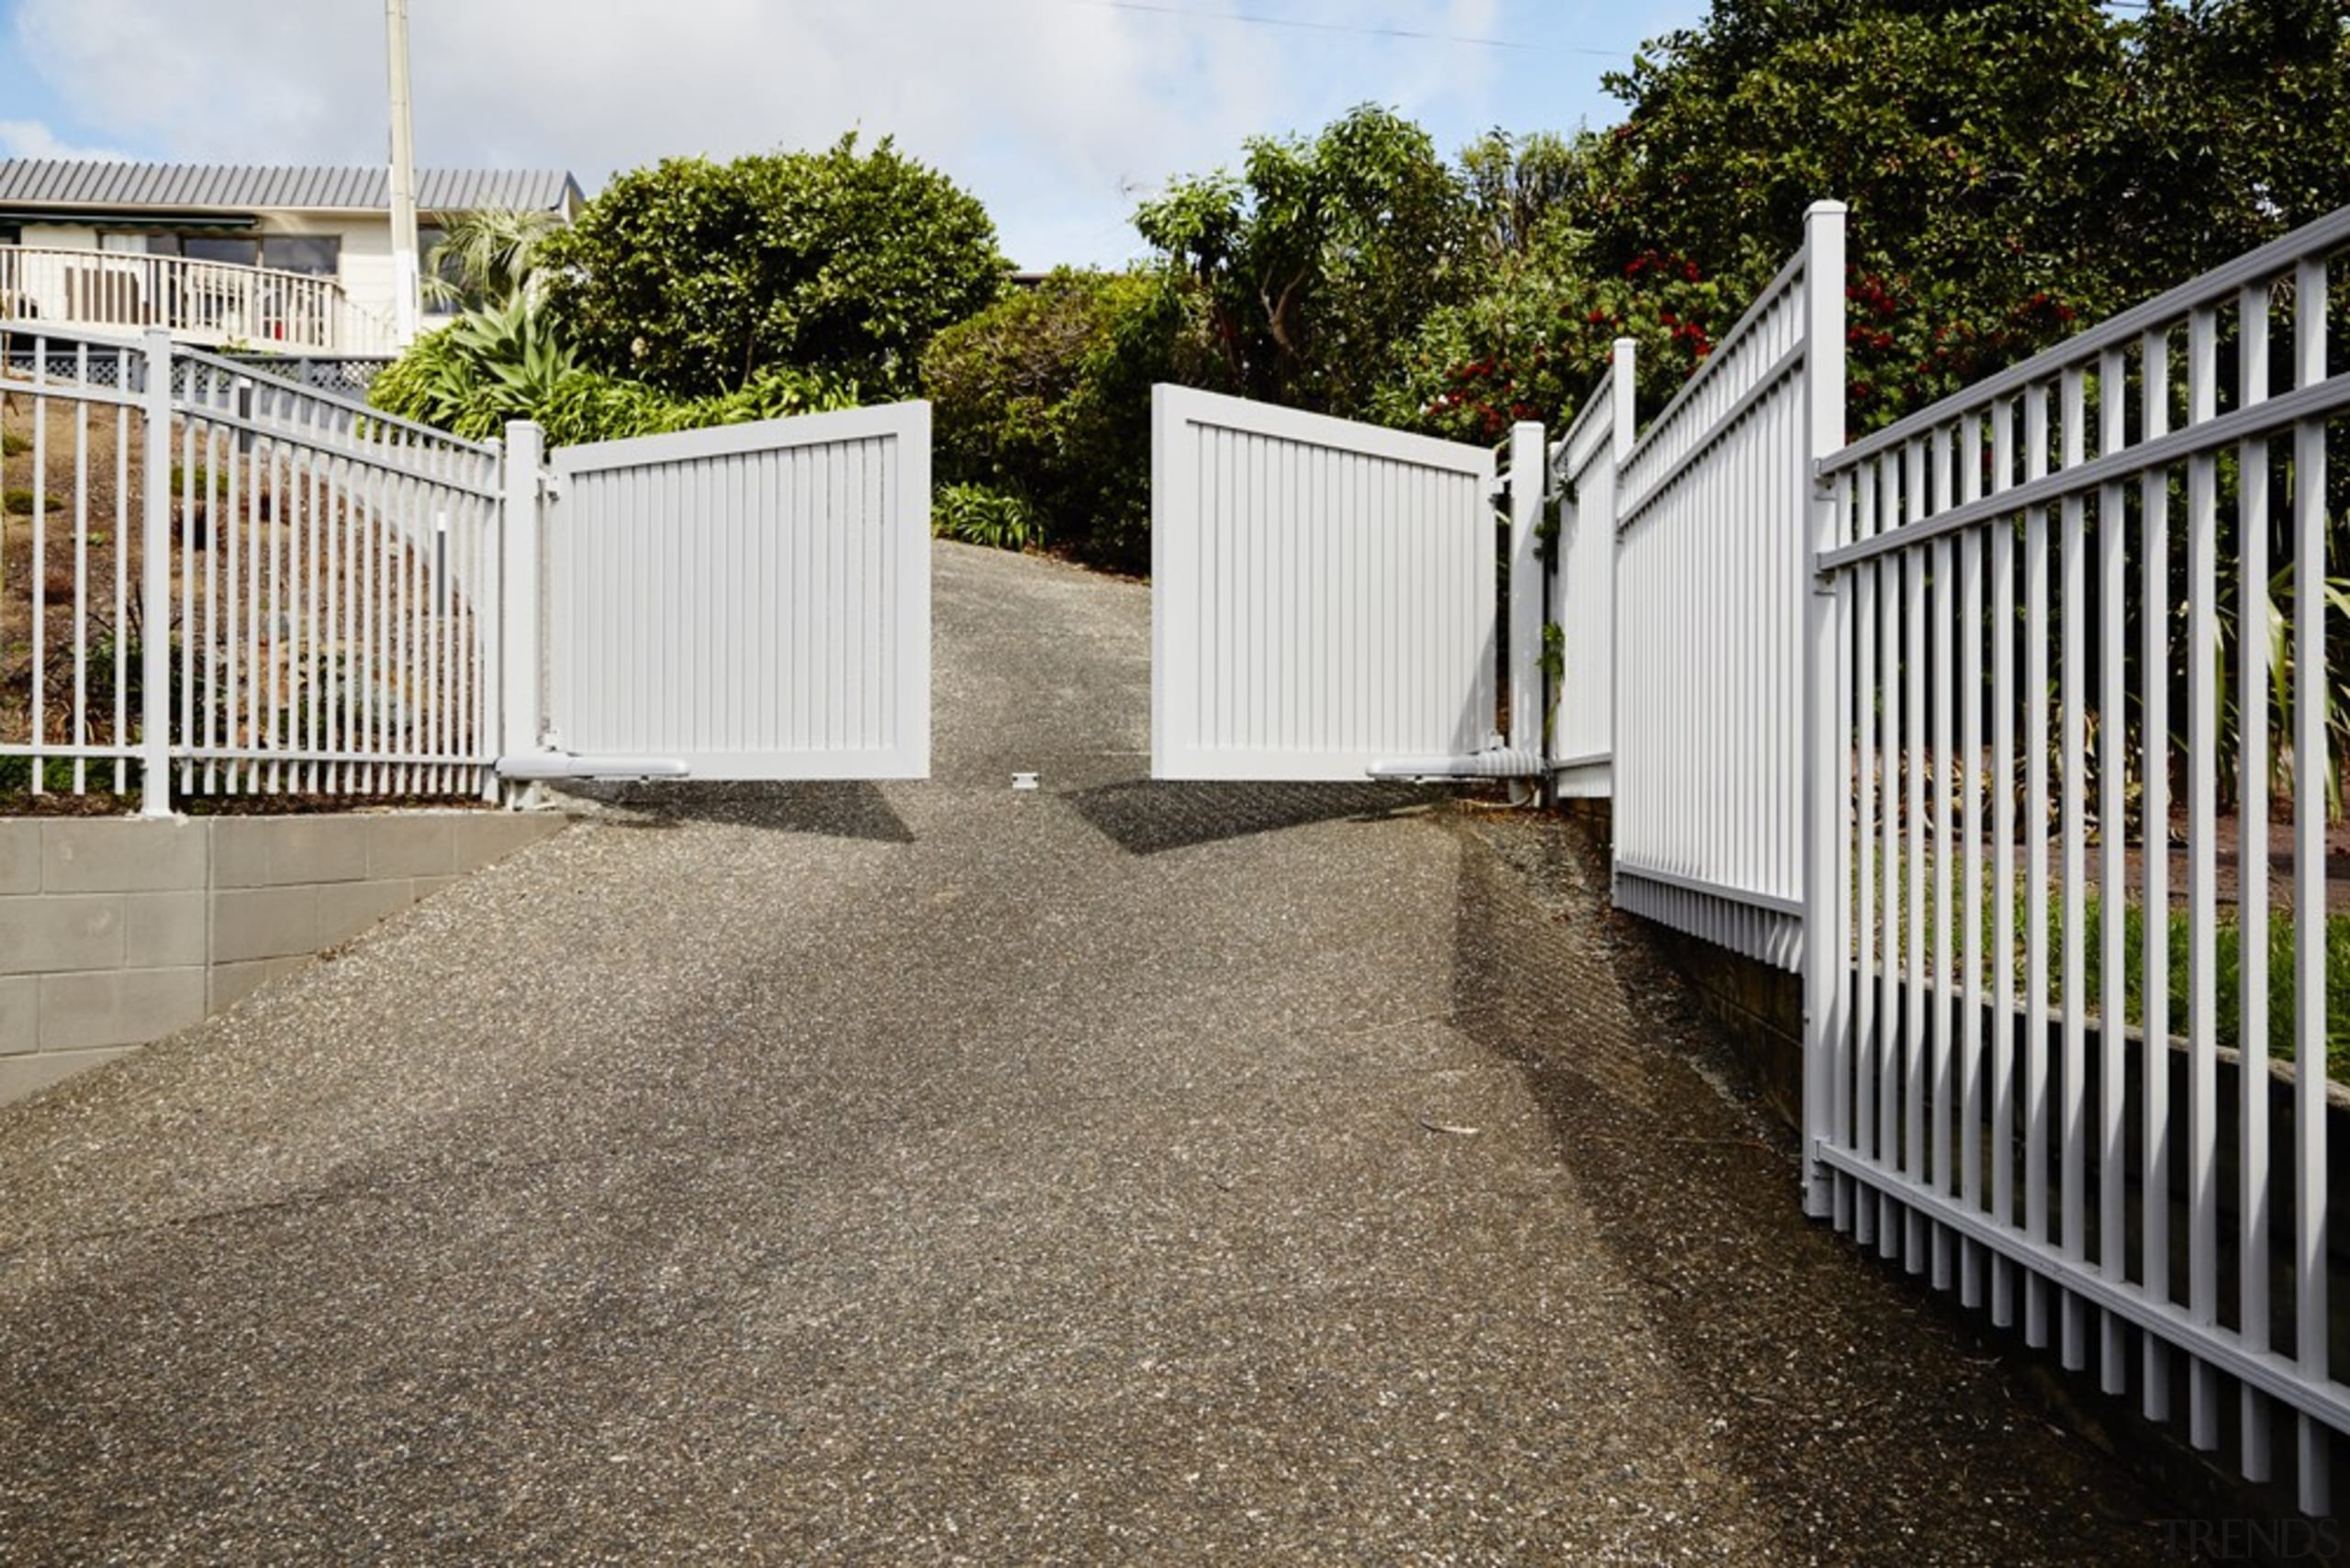 The gates are automated so they can be driveway, fence, gate, home, home fencing, outdoor structure, picket fence, property, real estate, residential area, walkway, gray